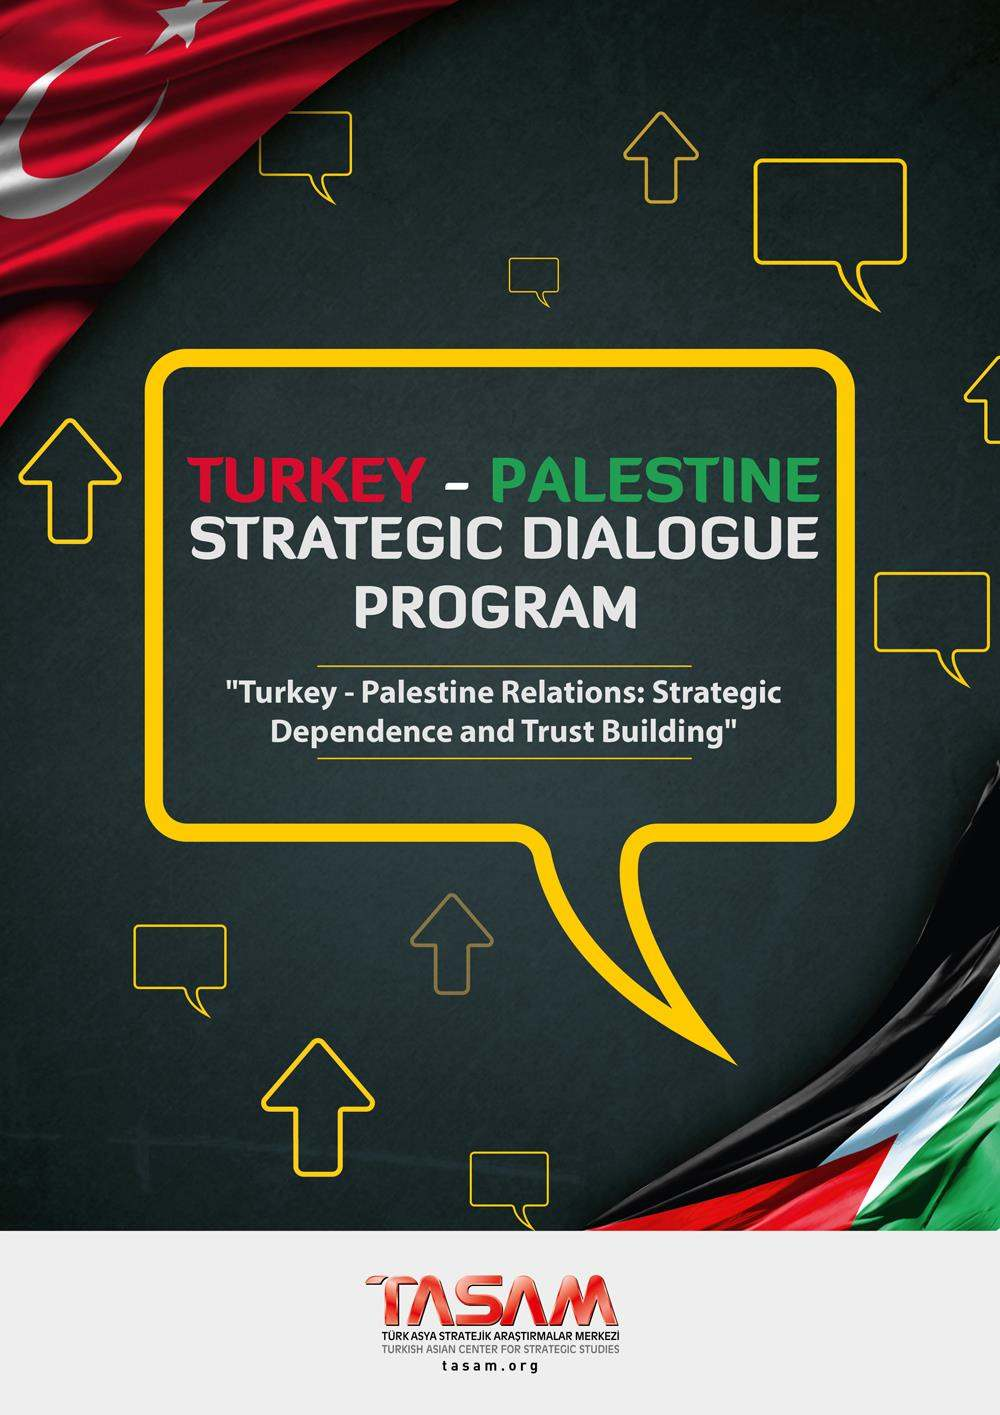 Turkey - Palestine Strategic Dialogue Program